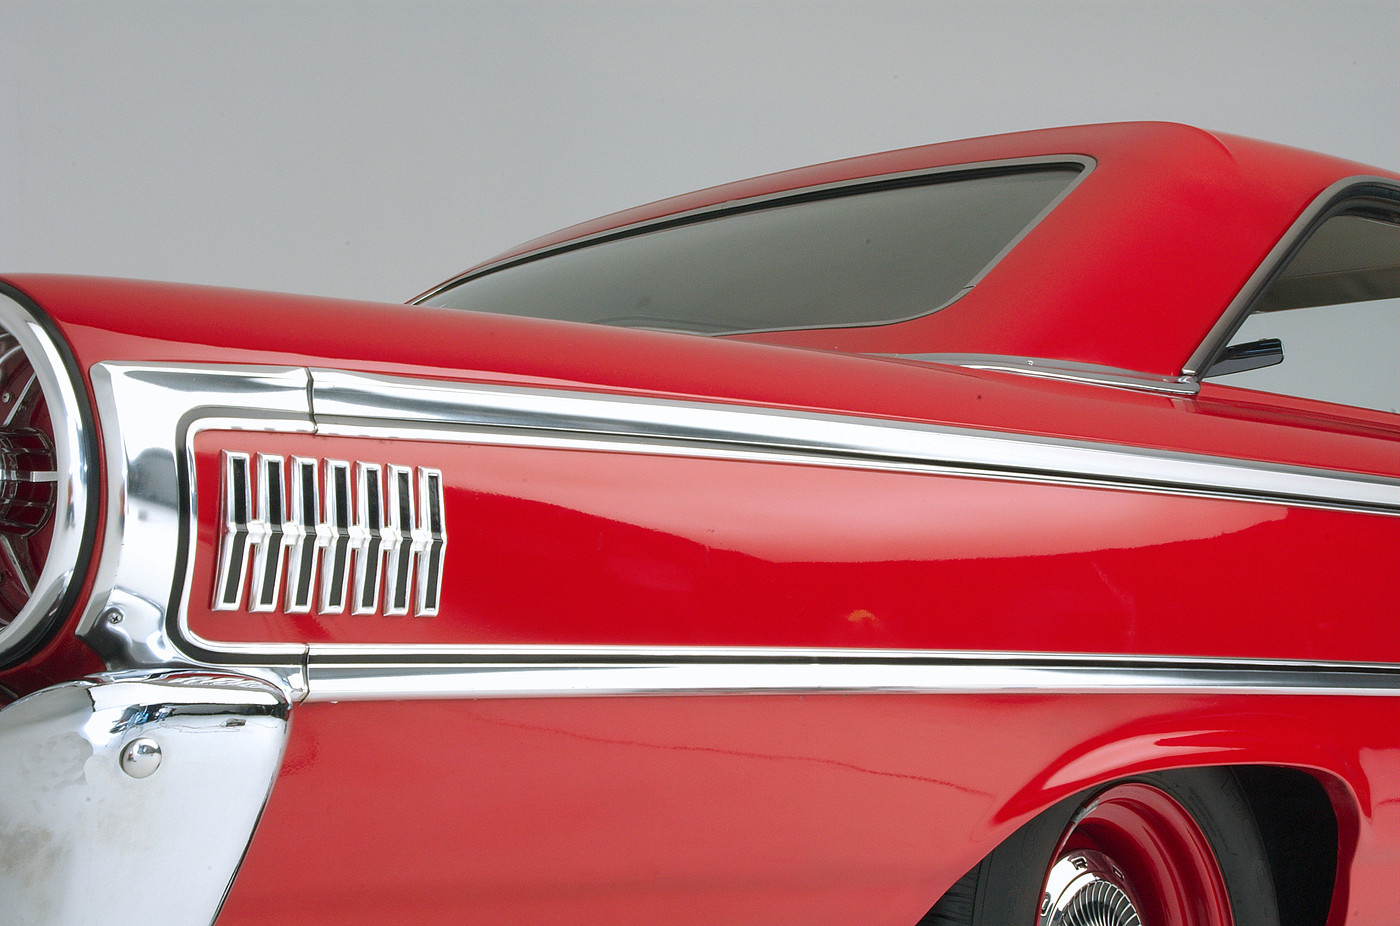 1963 Ford Galaxie 500 XL 427 R-code rear quarter panel and roofline view